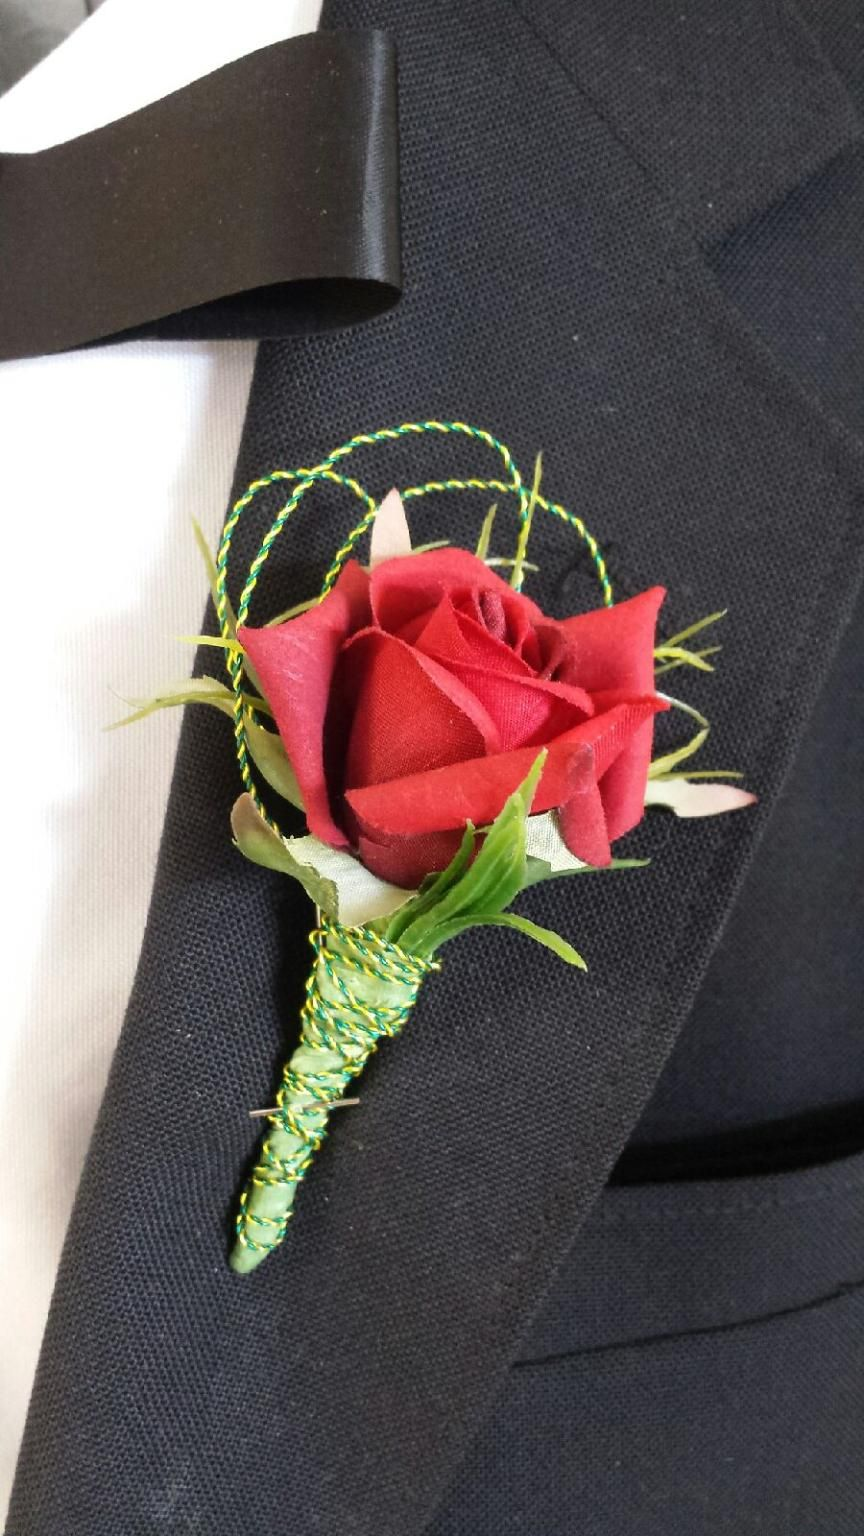 sample silk single red rose boutonniere with green wrapped stems and fancy wire loops